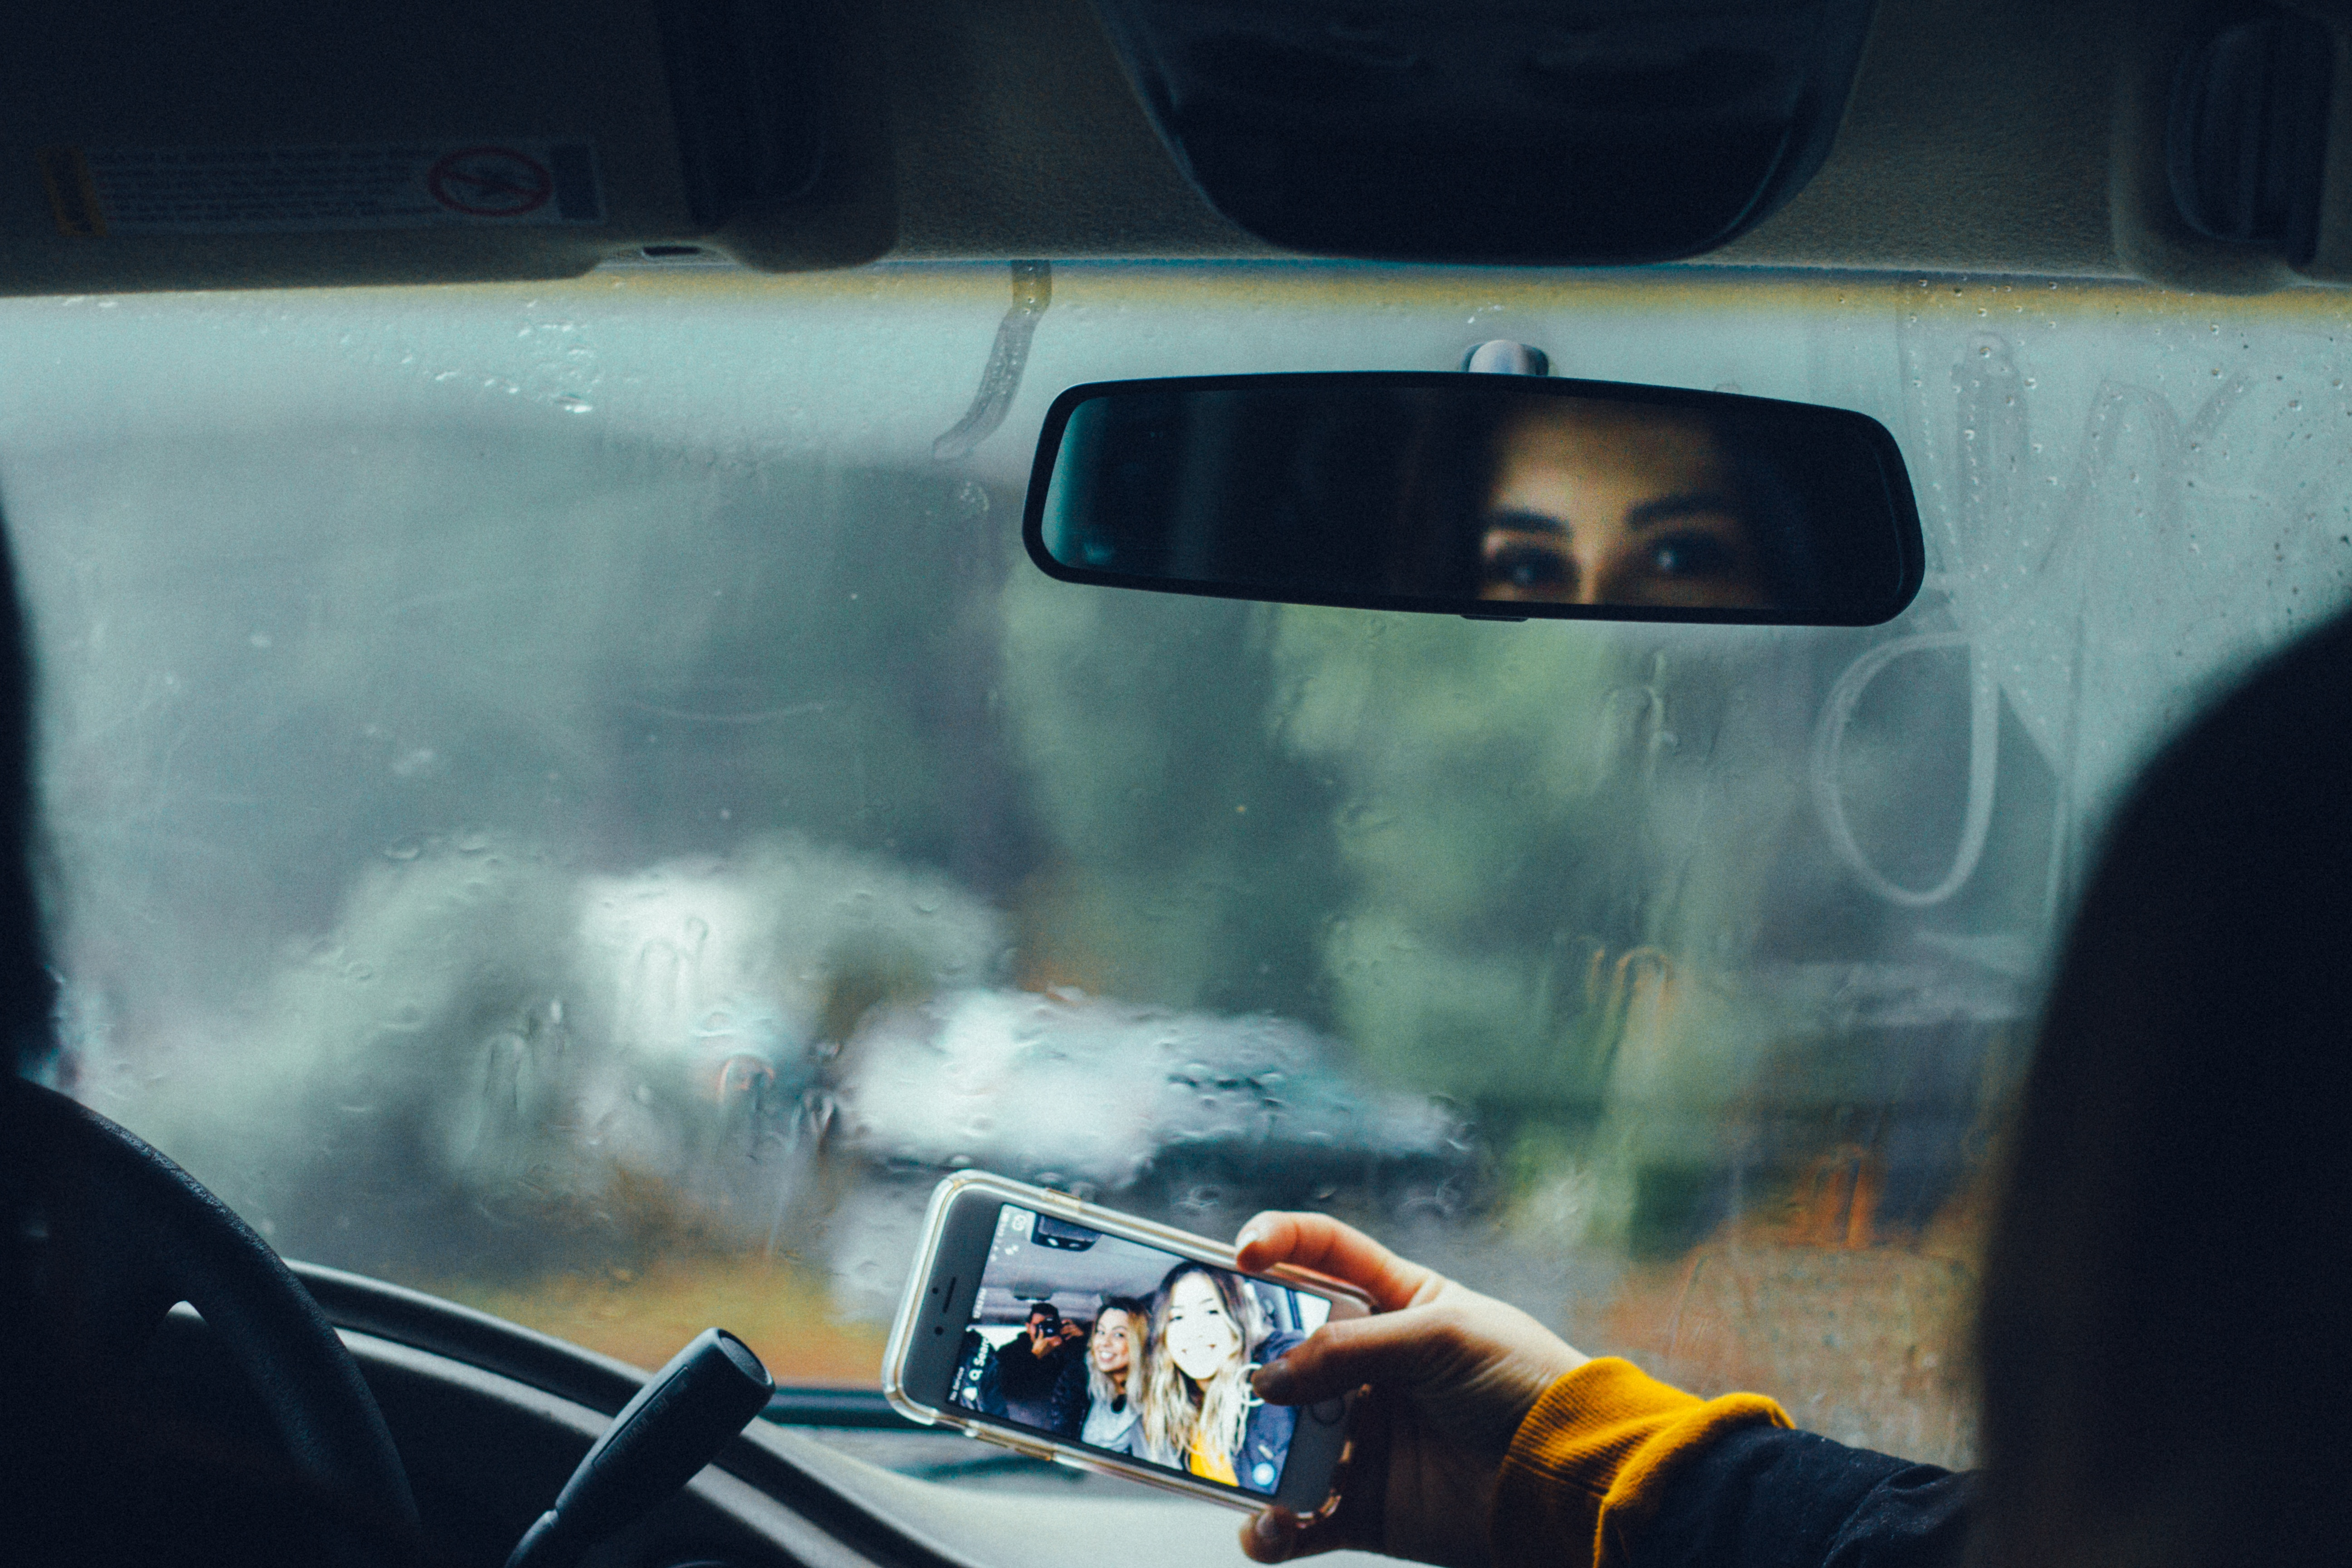 Smartphones May Be Leading to More Traffic Deaths Than the